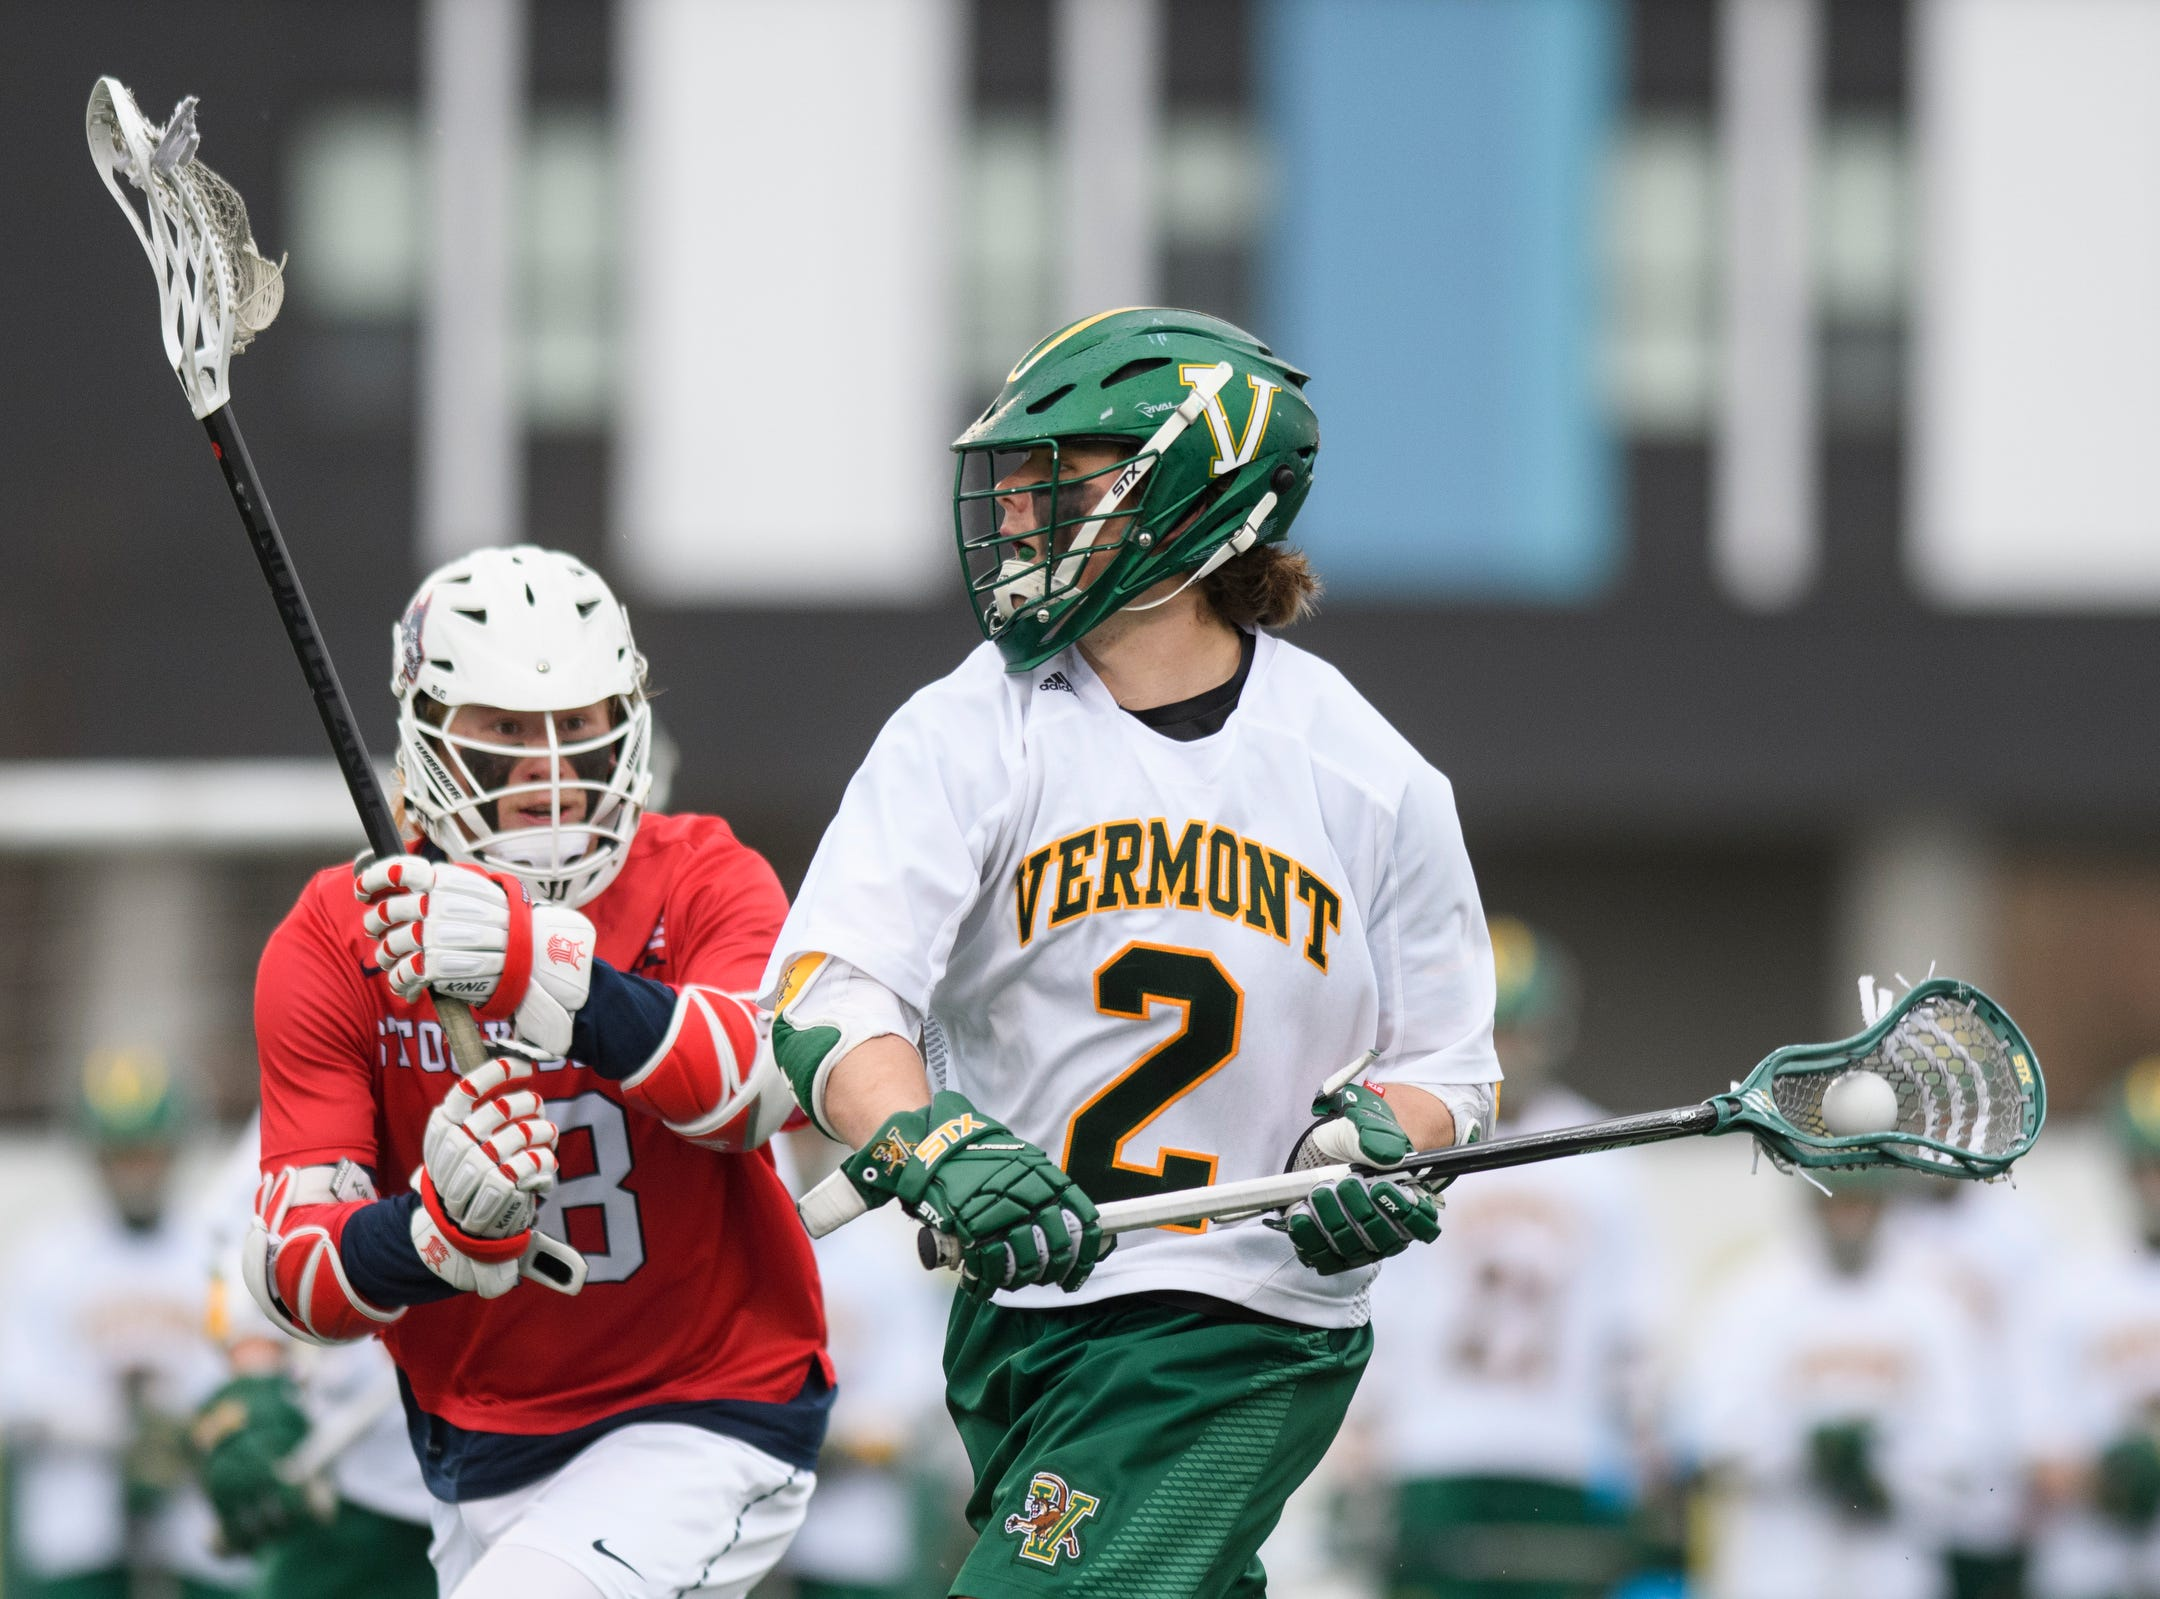 Vermont's Jack Knight (2) looks to take a shot during the men's lacrosse game between the Stony Brook Sea Wolves and the Vermont Catamounts at Virtue Field on Saturday afternoon April 20, 2019 in Burlington, Vermont.